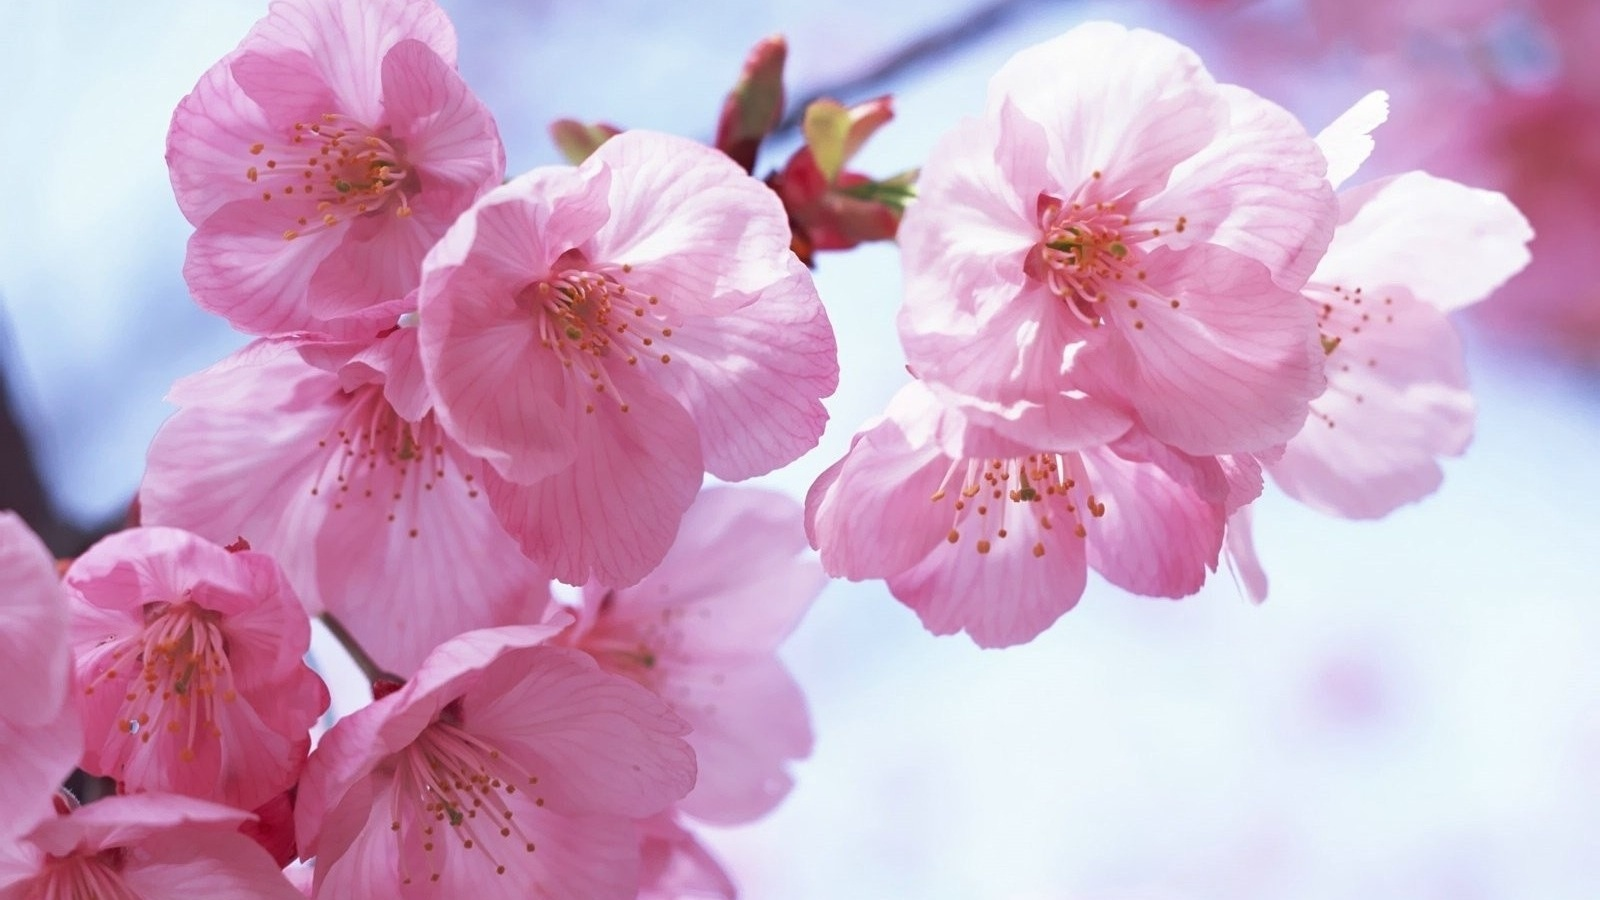 Pink spring flower wallpaper wallpapersafari - Red flower desktop wallpaper ...